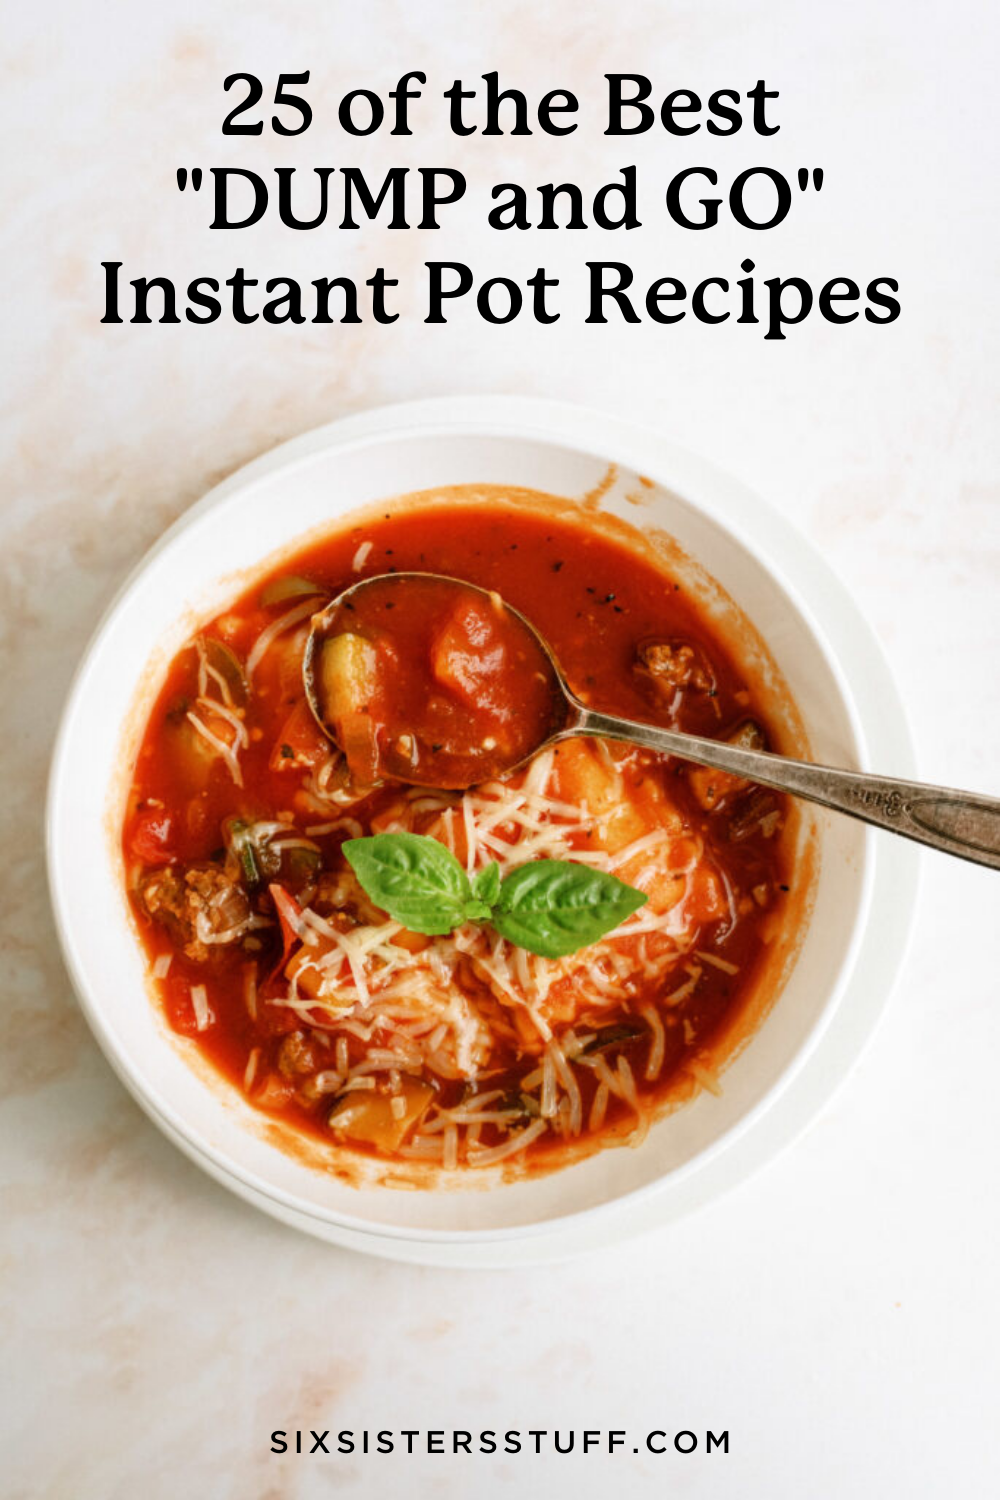 25 of the Best Dump and Go Instant Pot Recipes